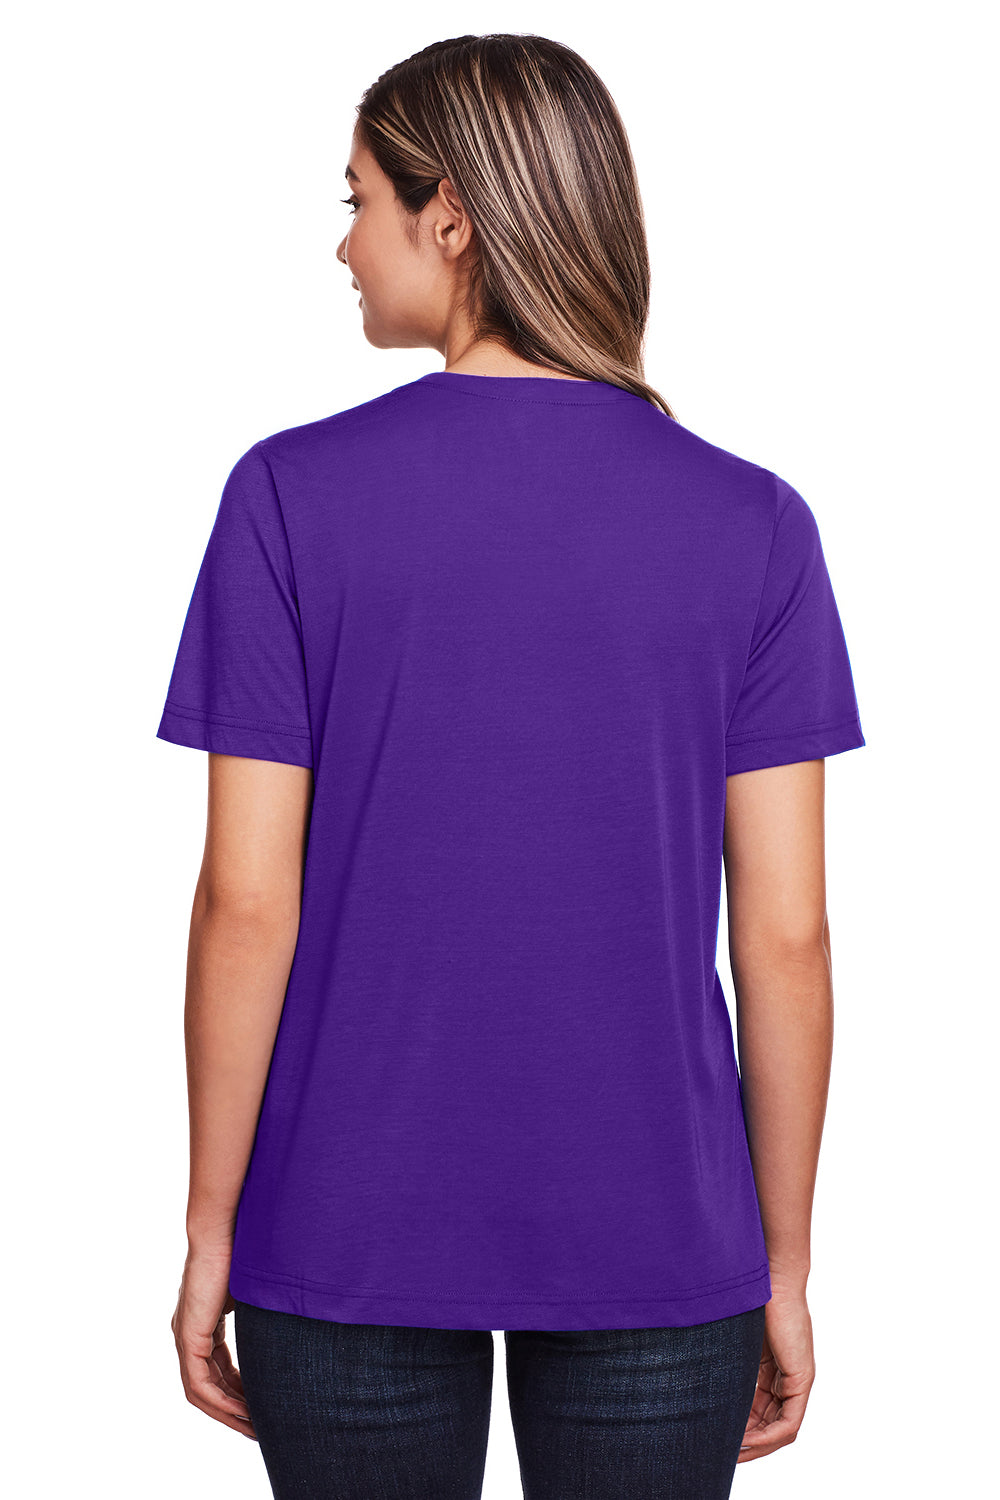 Core 365 CE111W Womens Fusion ChromaSoft Performance Moisture Wicking Short Sleeve Scoop Neck T-Shirt Purple Back